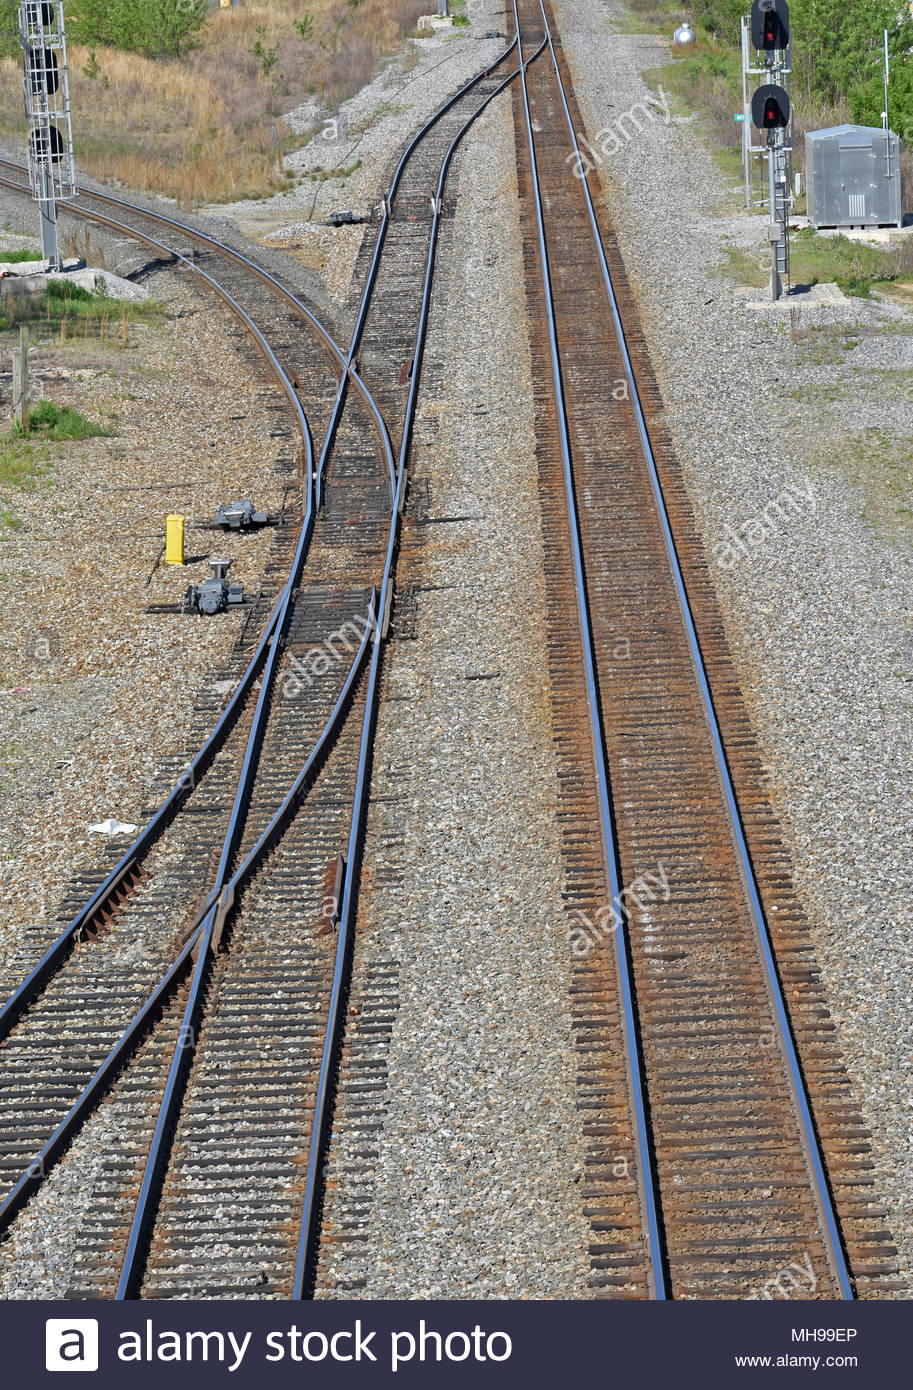 railroad-tracks-siding-and-switch-MH99EP